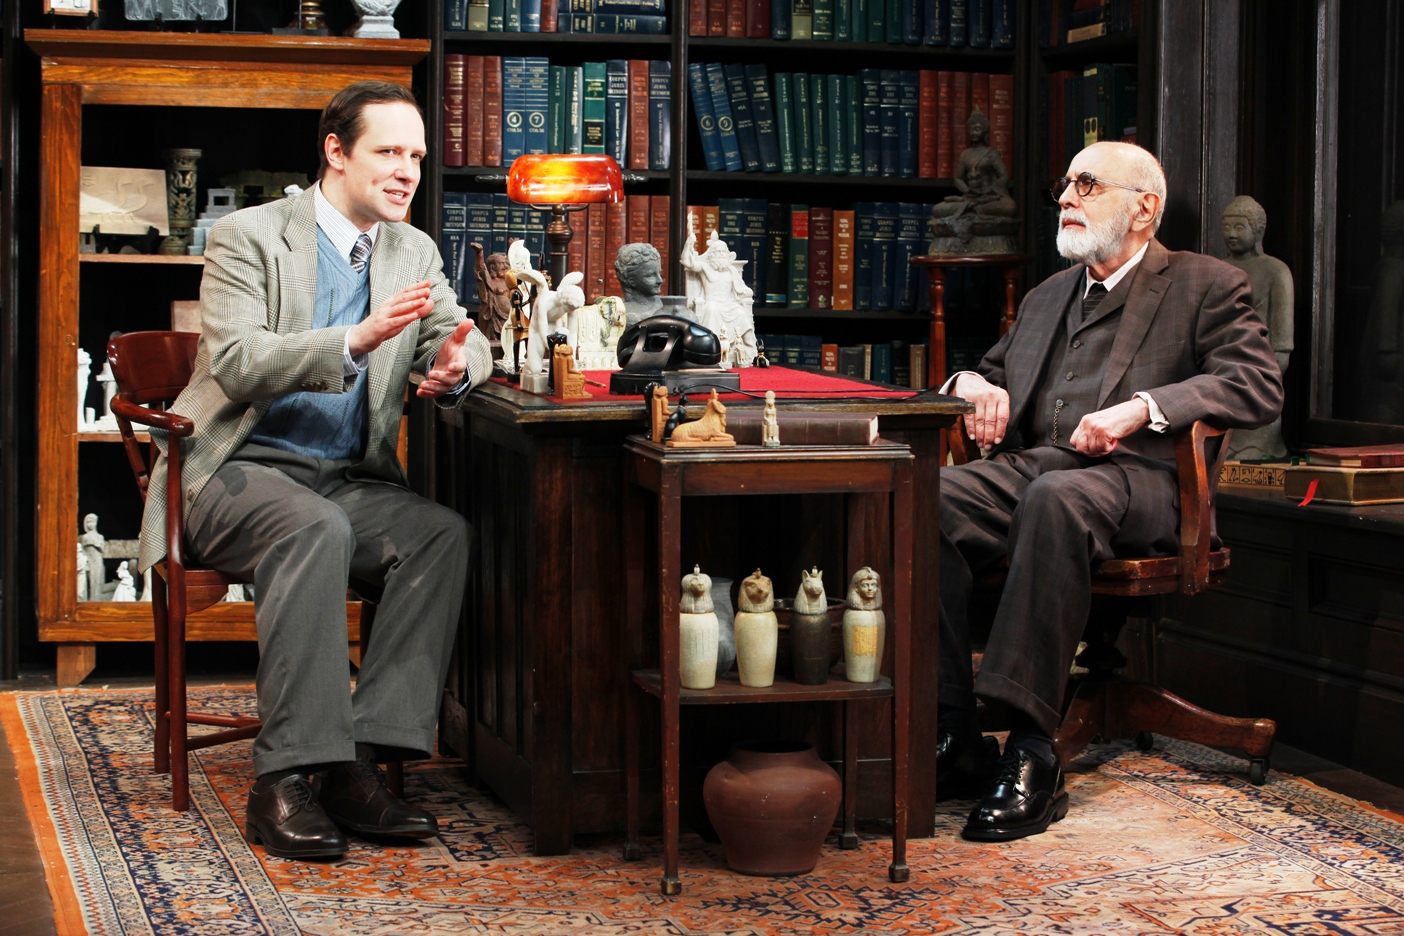 BWW Interviews: Catching Up with FREUD'S LAST SESSION's Jim Stanek